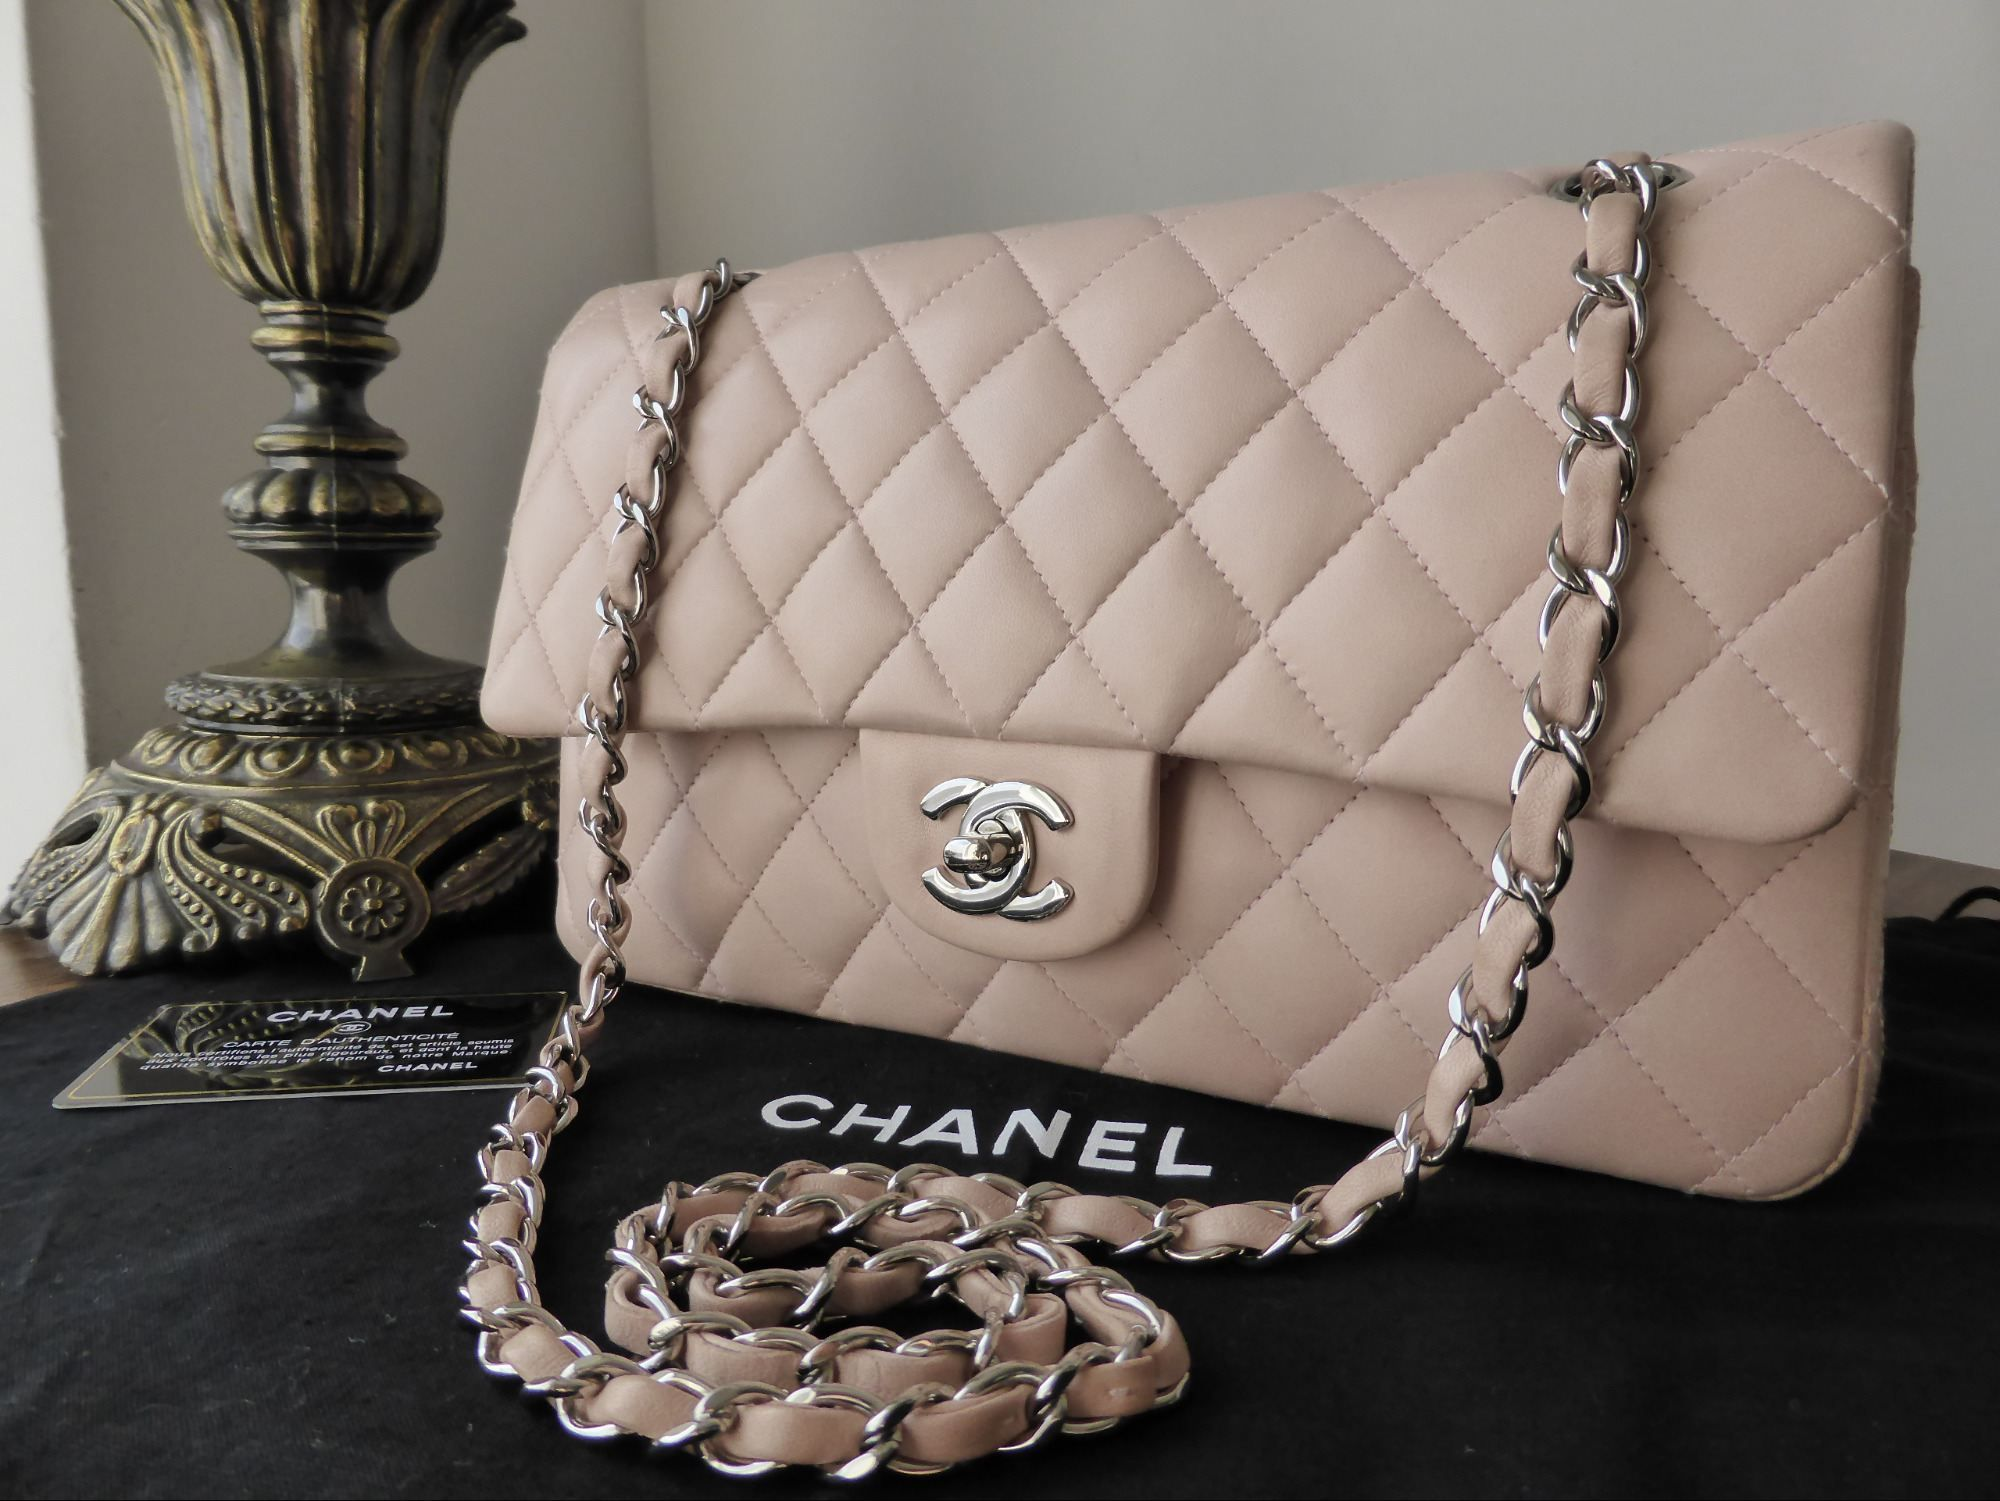 abb1bcf1e553 Chanel Timeless Classic 2.55 Medium Flap Bag in Nude Pink Lambskin with  Silver Hardware  gt